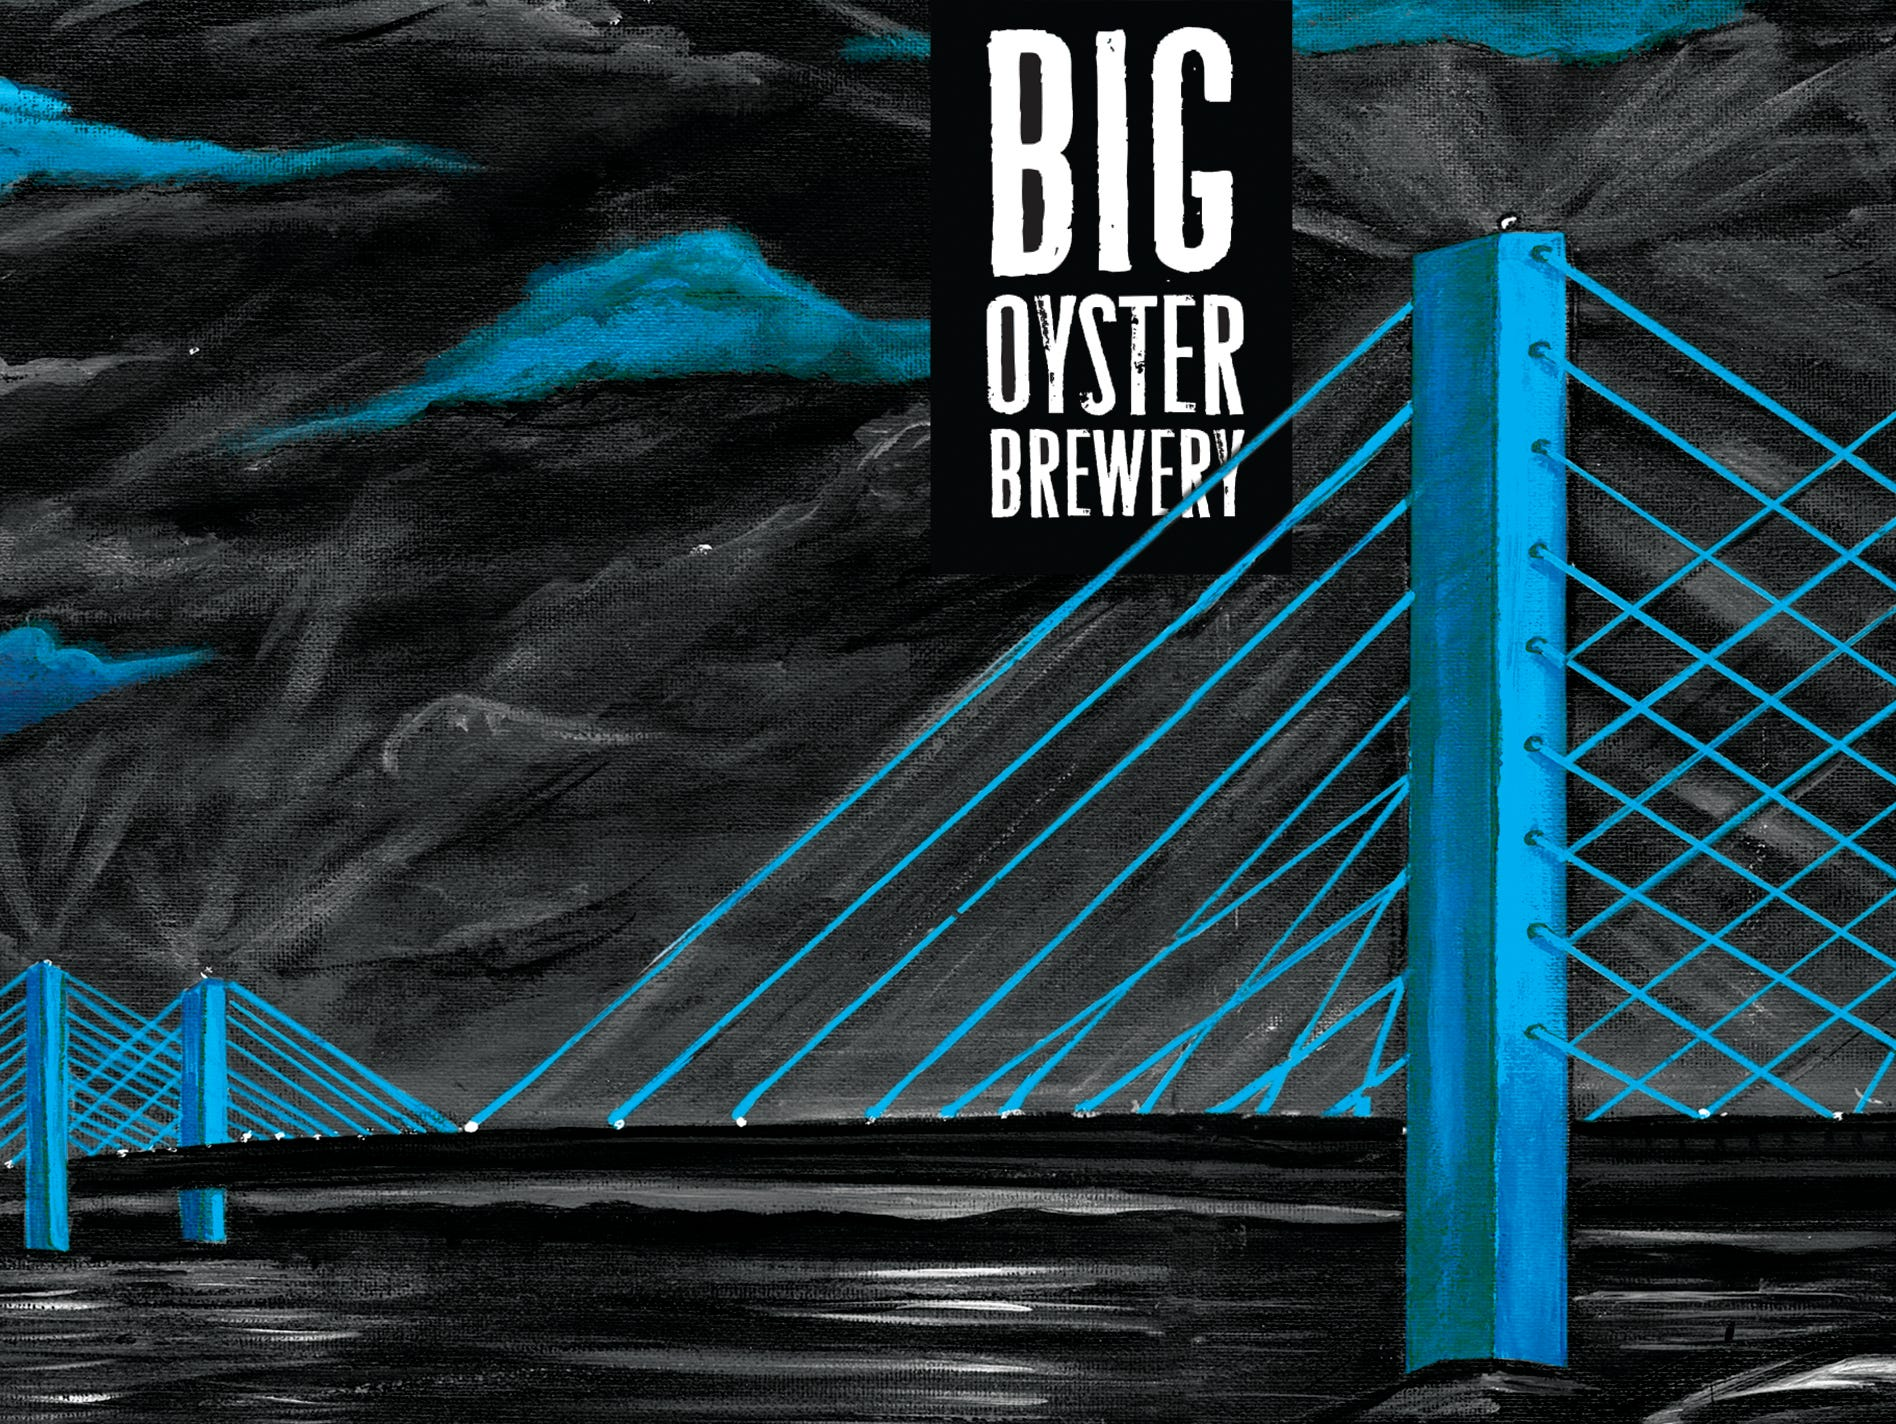 The acrylic painting of the Indian River Inlet bridge for the Big Oyster Brewery's Noir et Bleu tripel. Artwork by Laura Erickson.